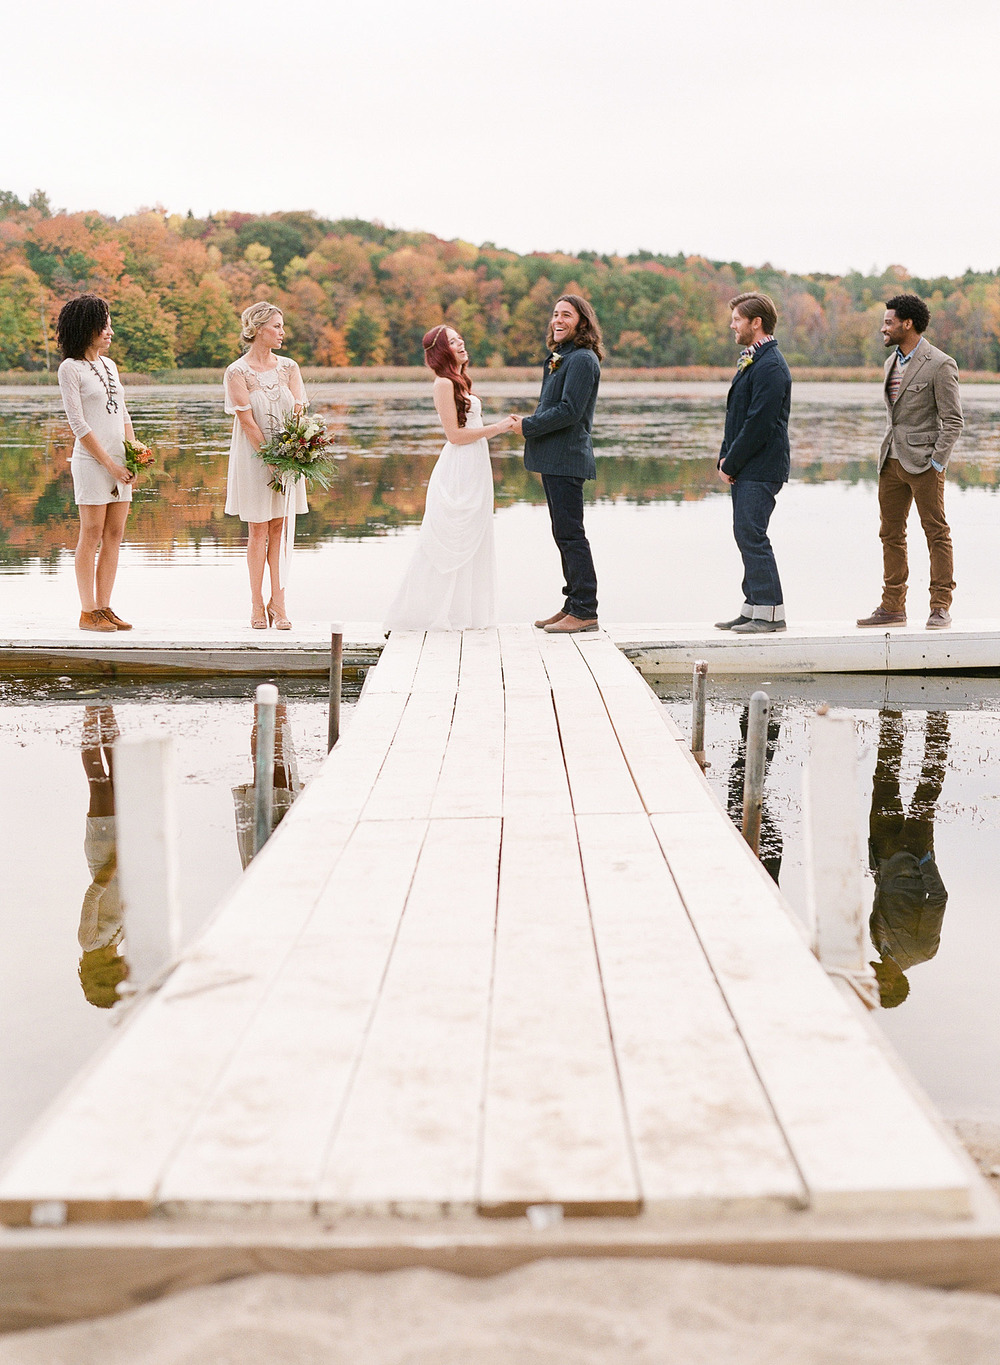 Lexia Frank is a destination wedding photographer and film photographer who shoots luxury weddings throughout the US and worldwide. Camp Wandawega wedding